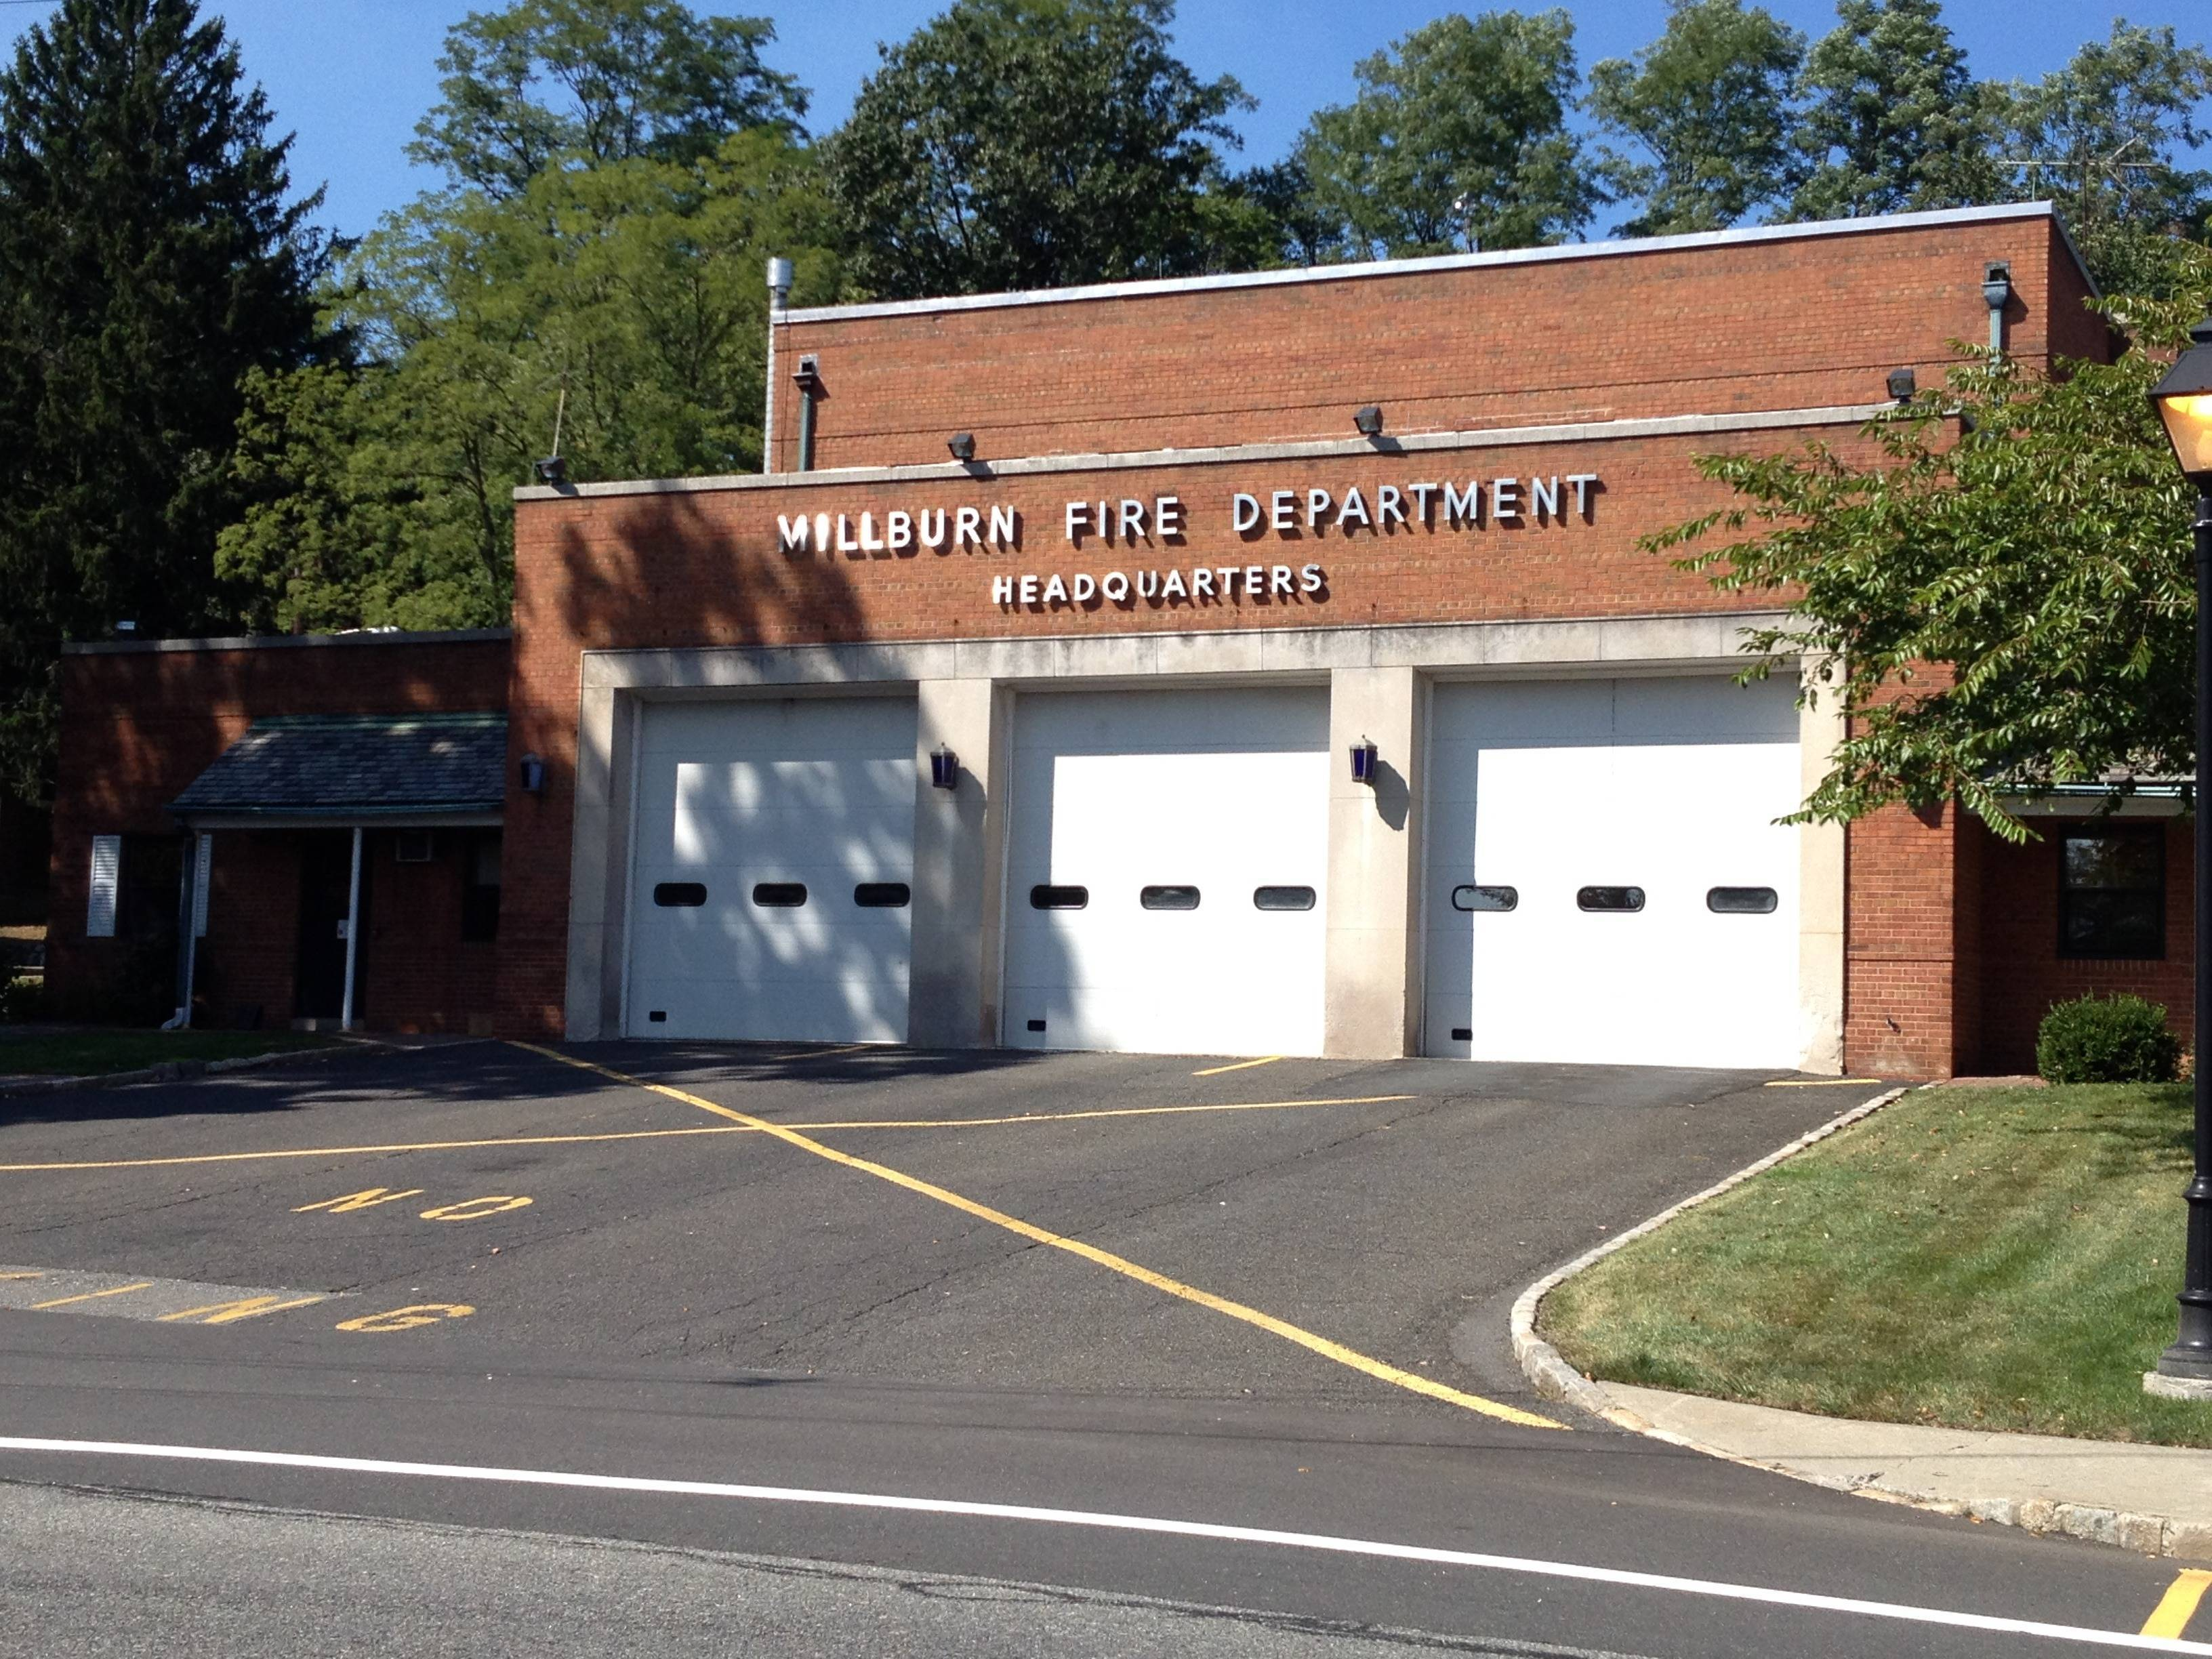 Millburn Fire Department